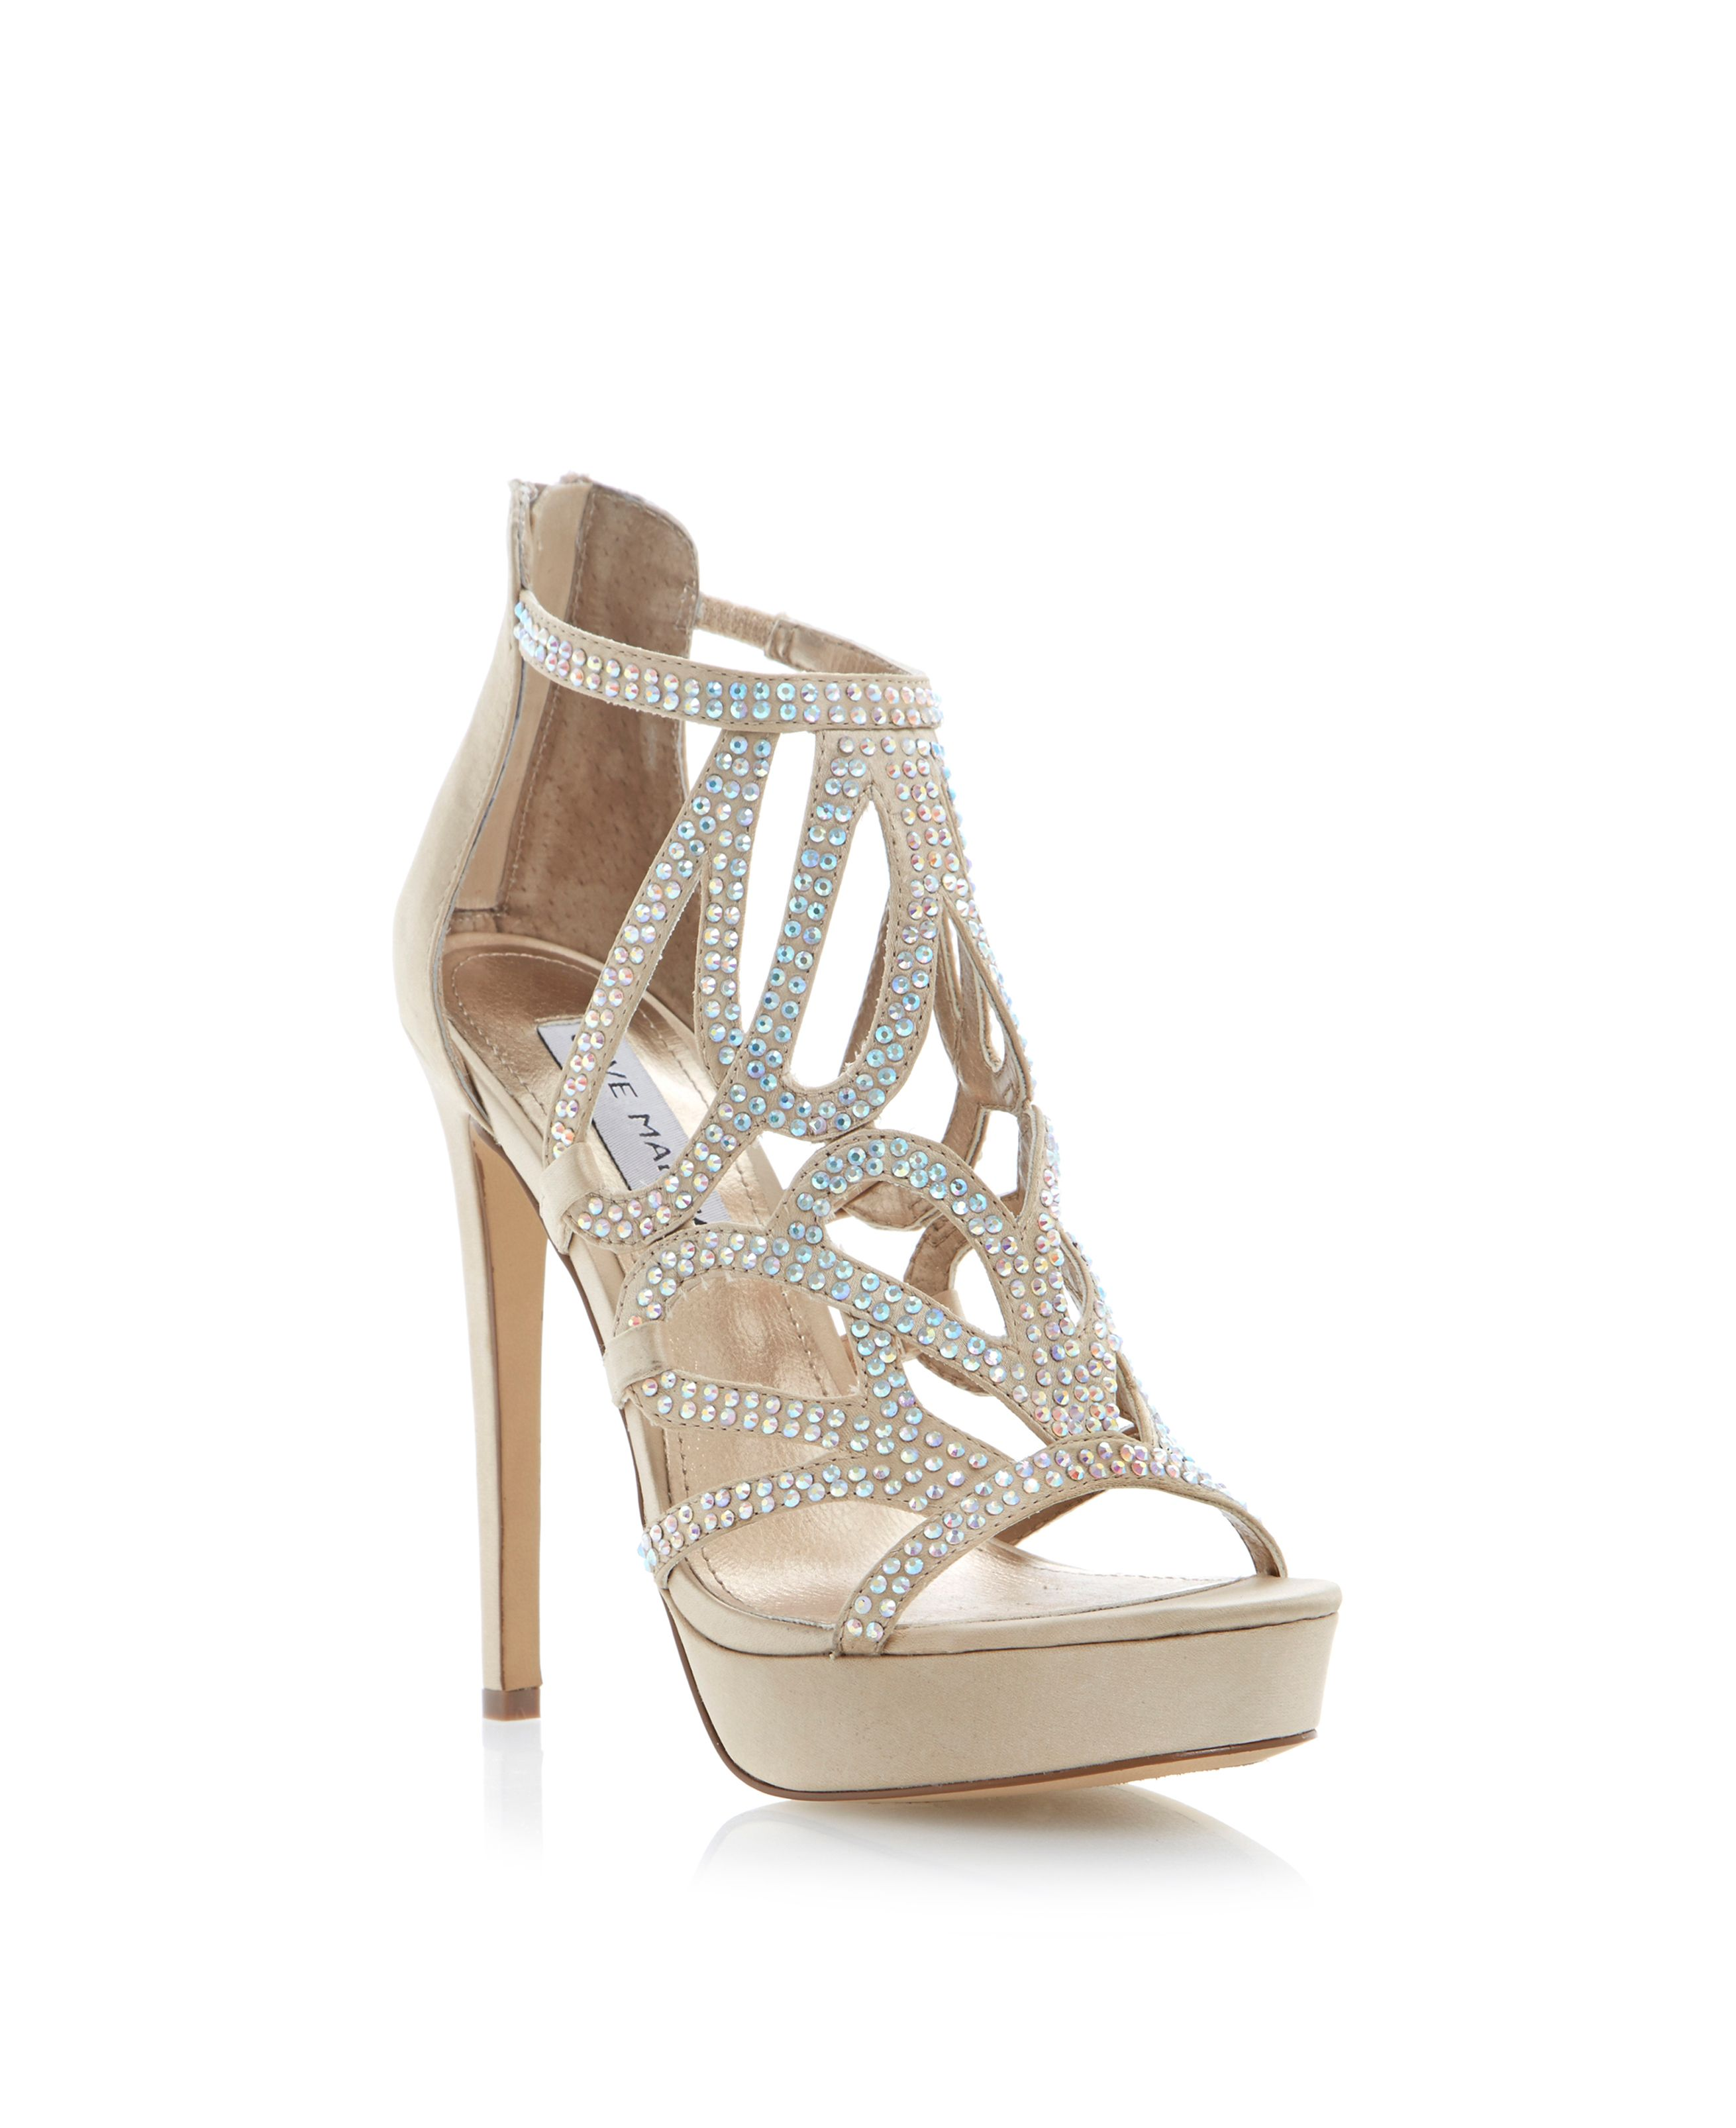 Singer diamante strappy stiletto sandals